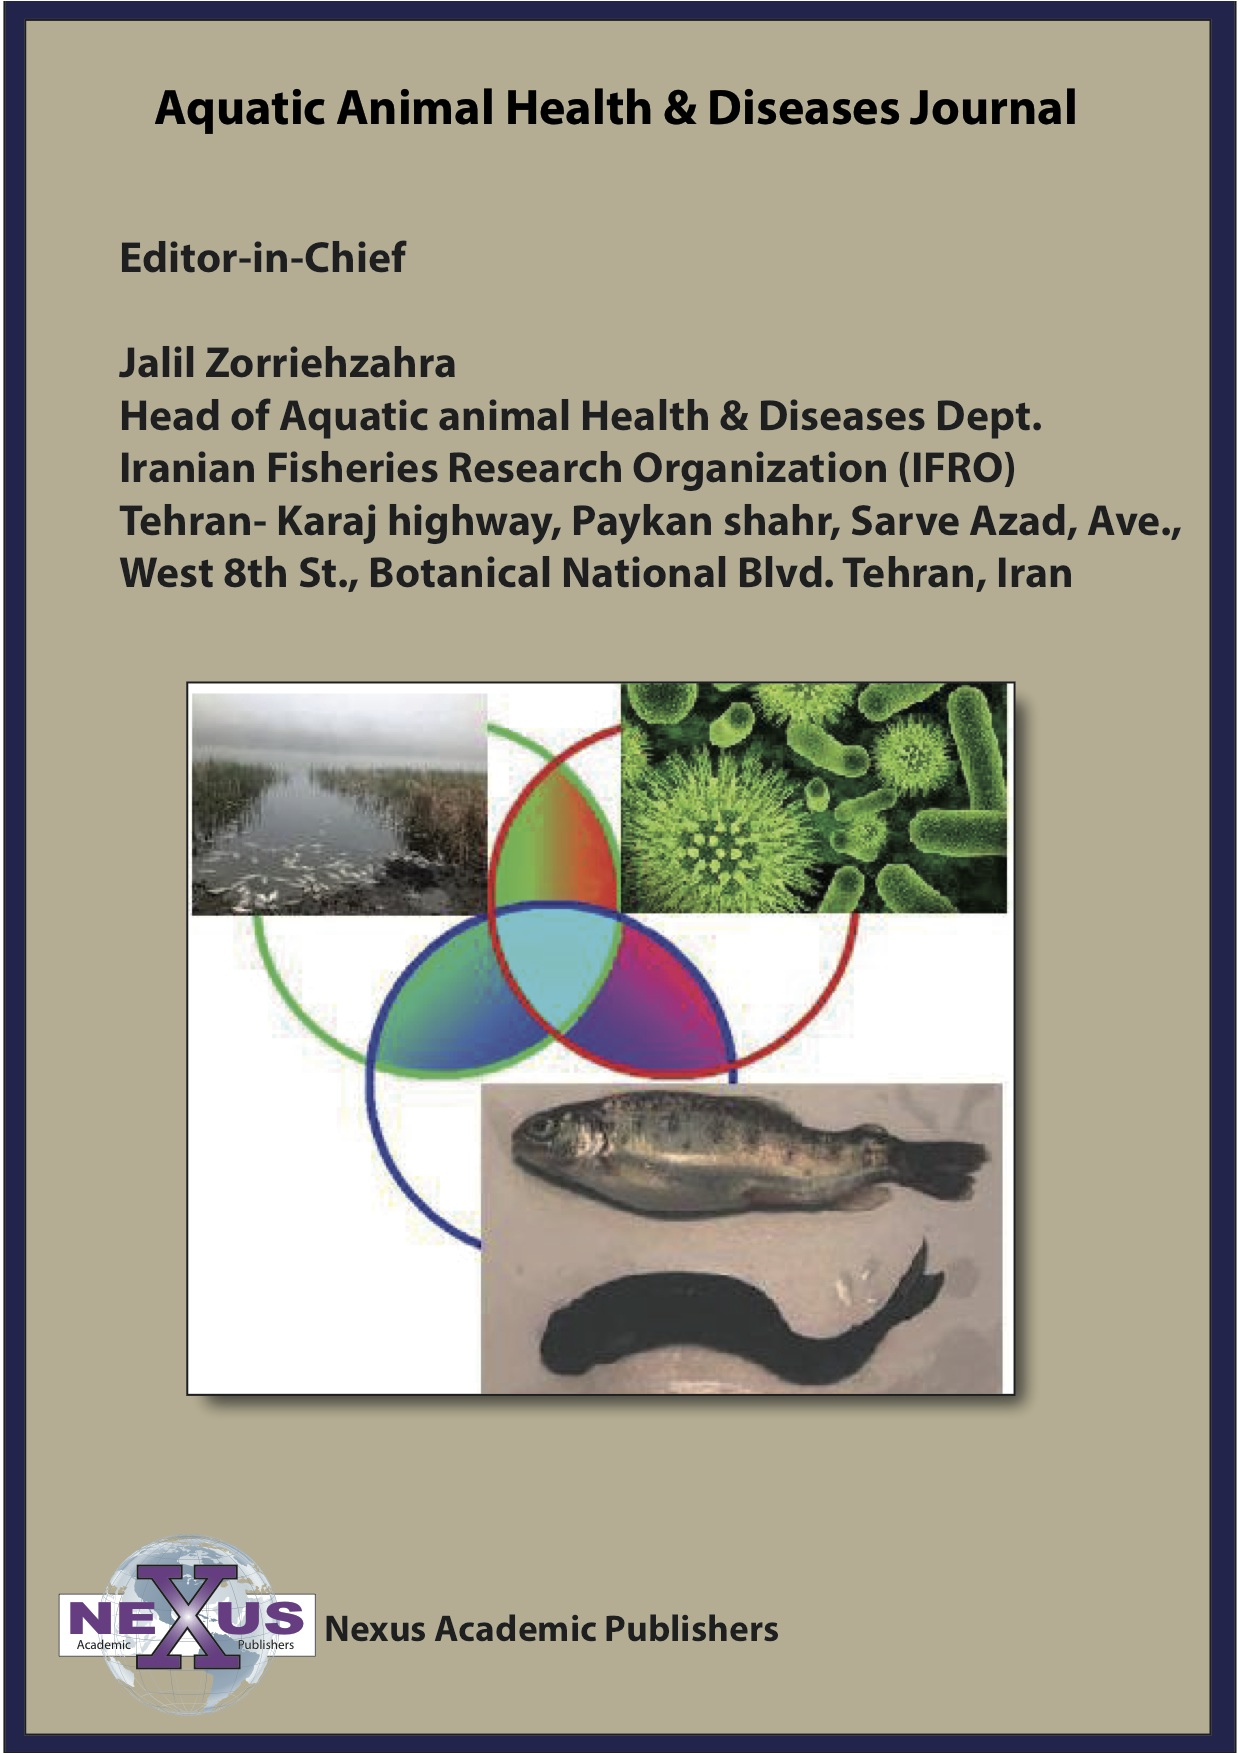 Aquatic Animal Health & Diseases Journal